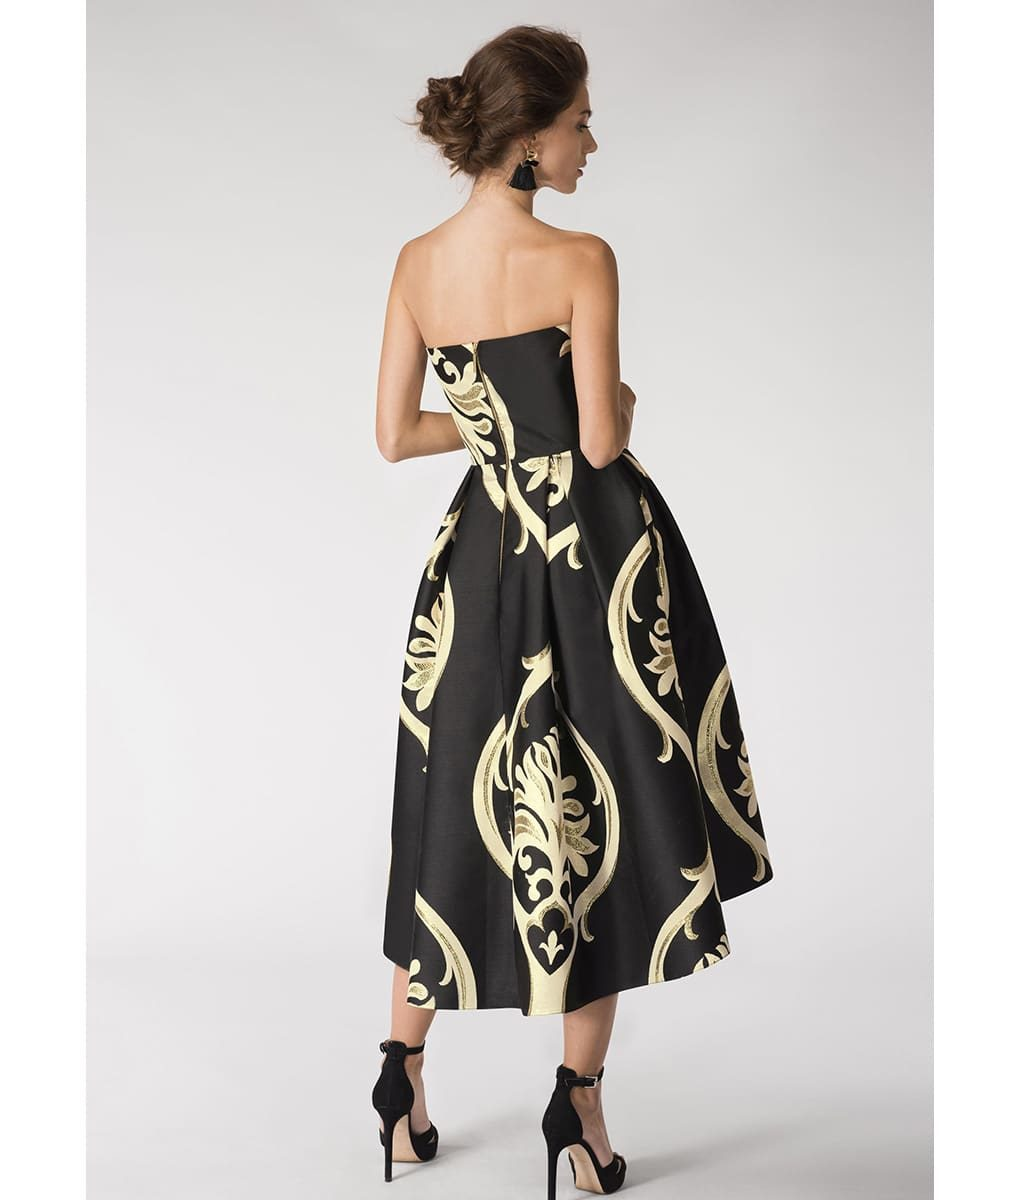 Alila-Strapless-brocade-black-and-gold-dress-Closet-London